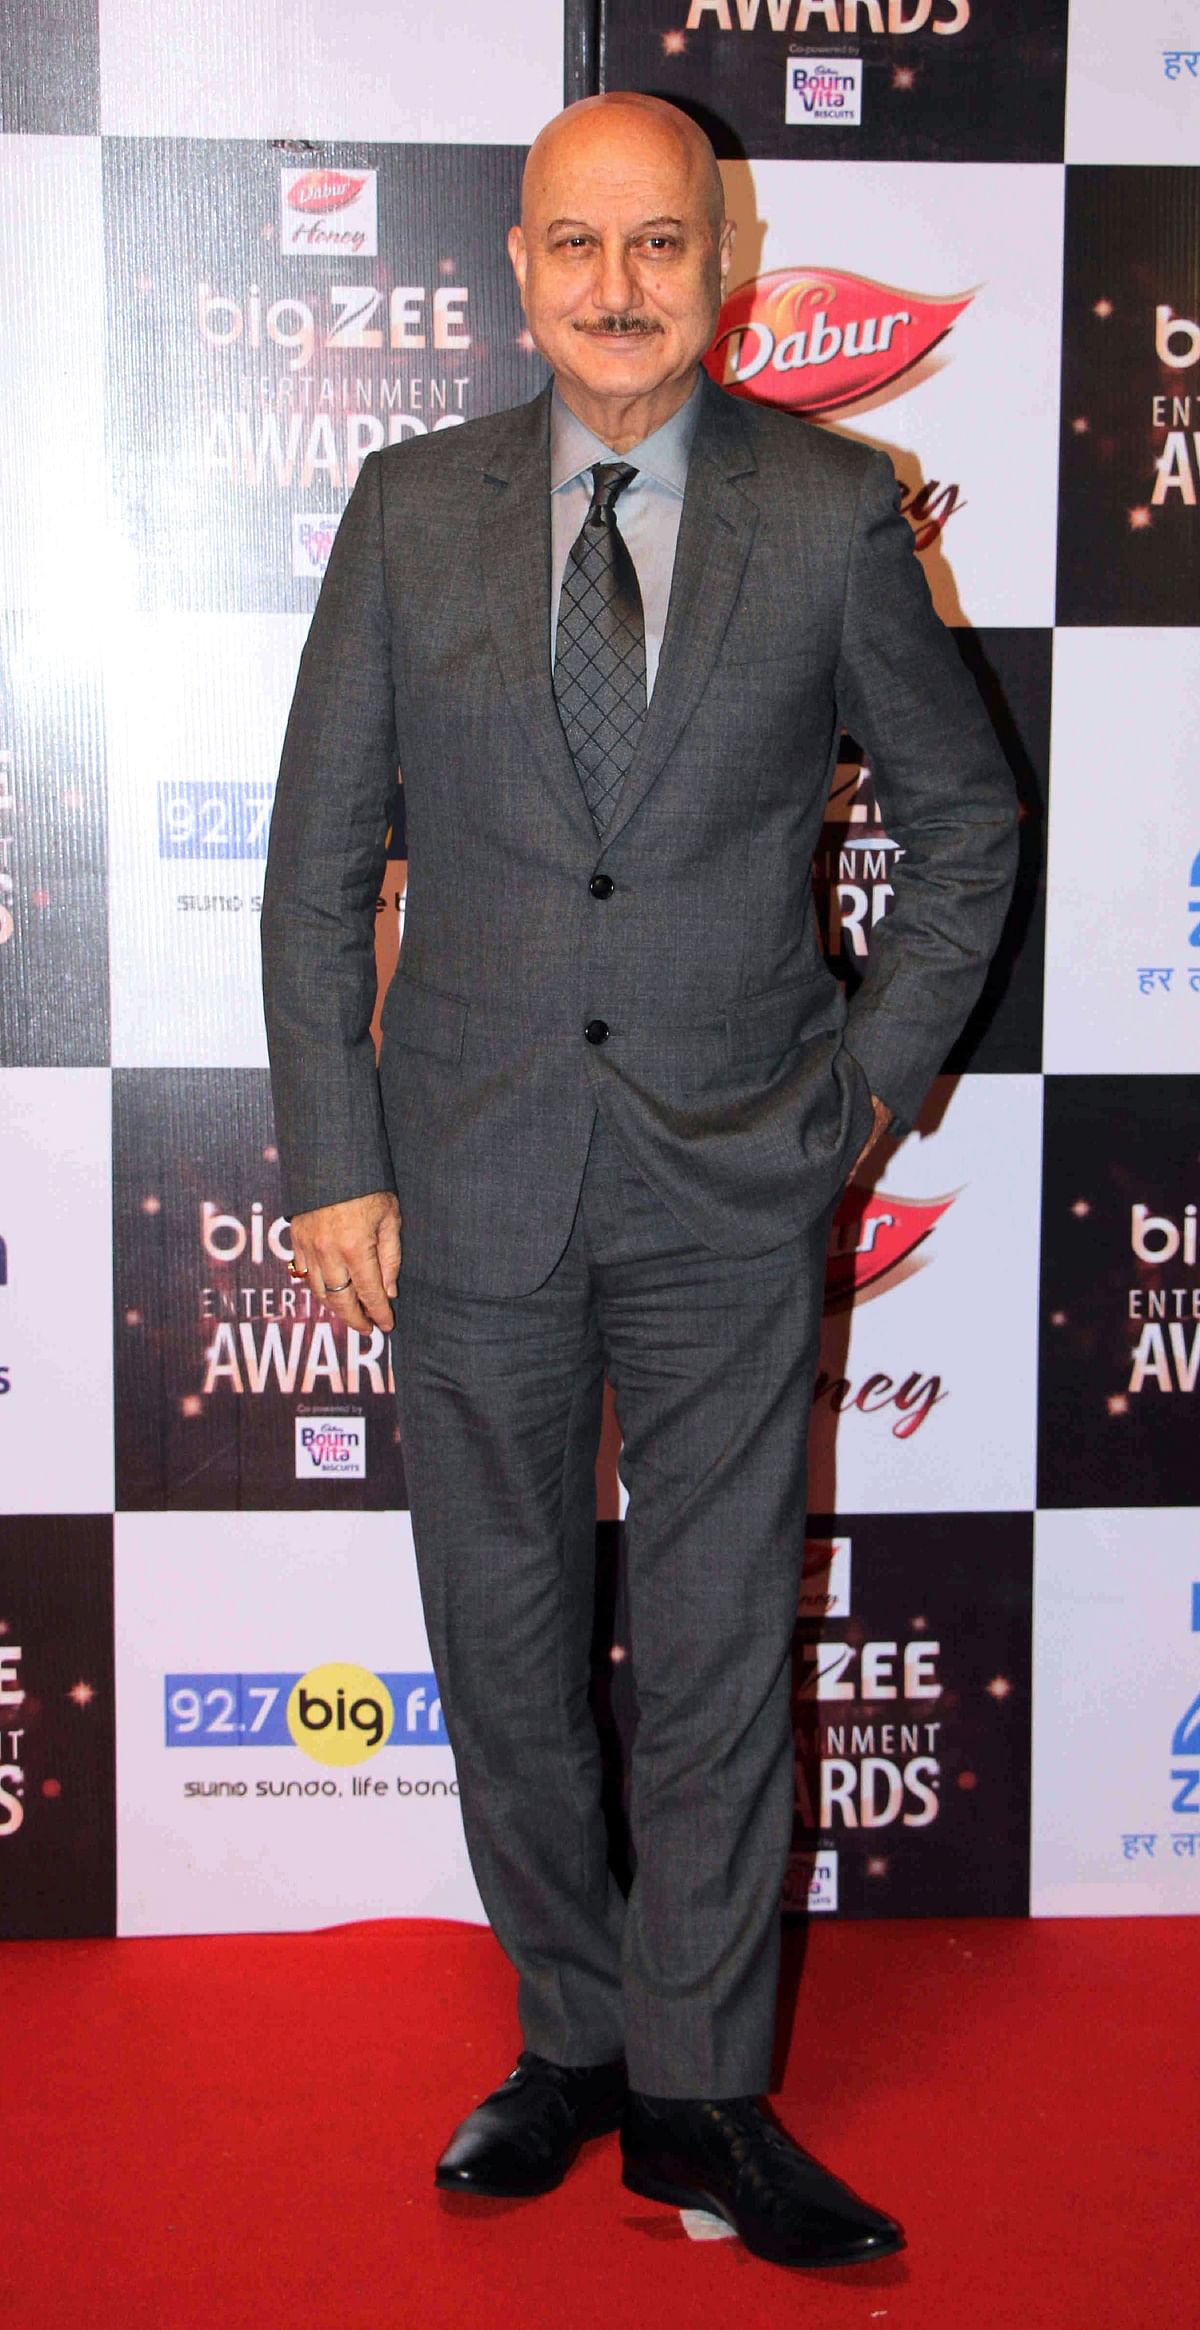 In this photograph taken on July 29, 2017, Indian Bollywood actor Anupam Kher attends the BIG ZEE Entertainment Awards 2017 ceremony in Mumbai. / AFP PHOTO / STR